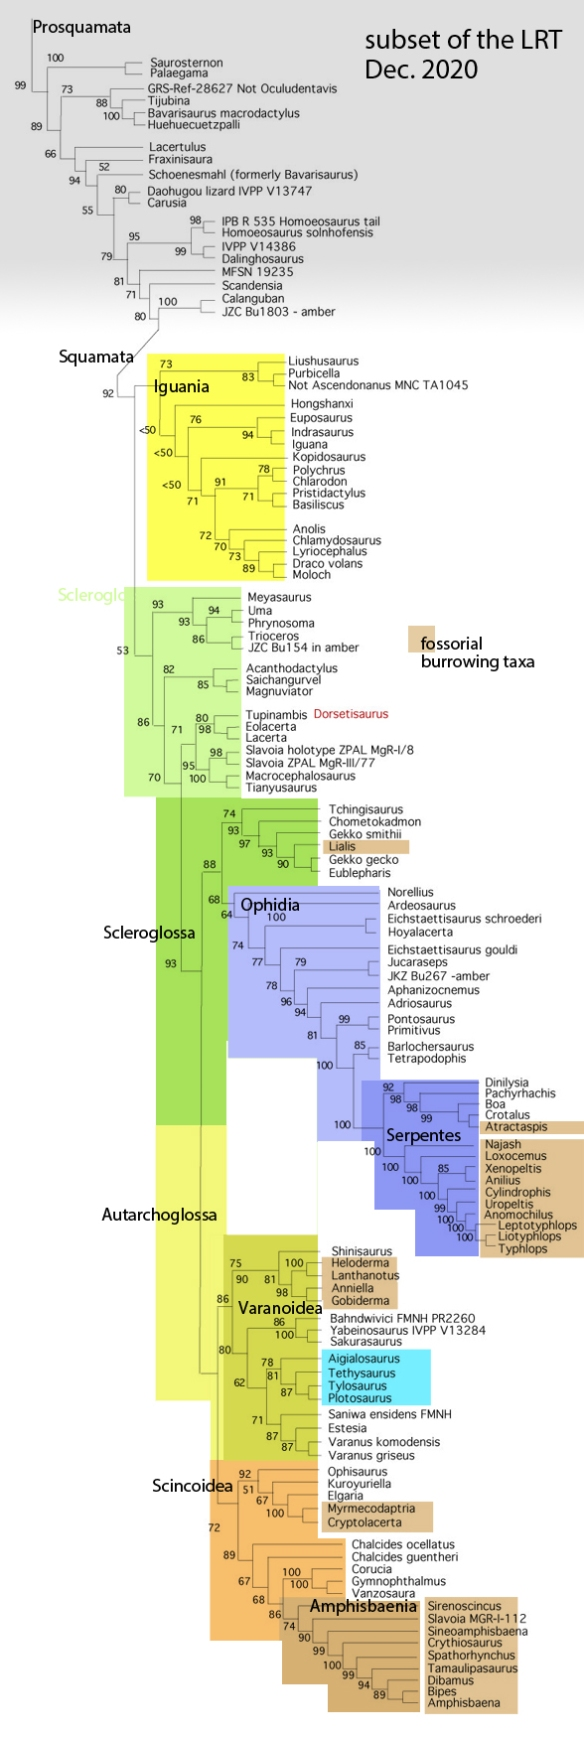 Figure 2. Subset of the LRT focusing on Squamata. Compare to Ebel et al. 2020 in figure 1.